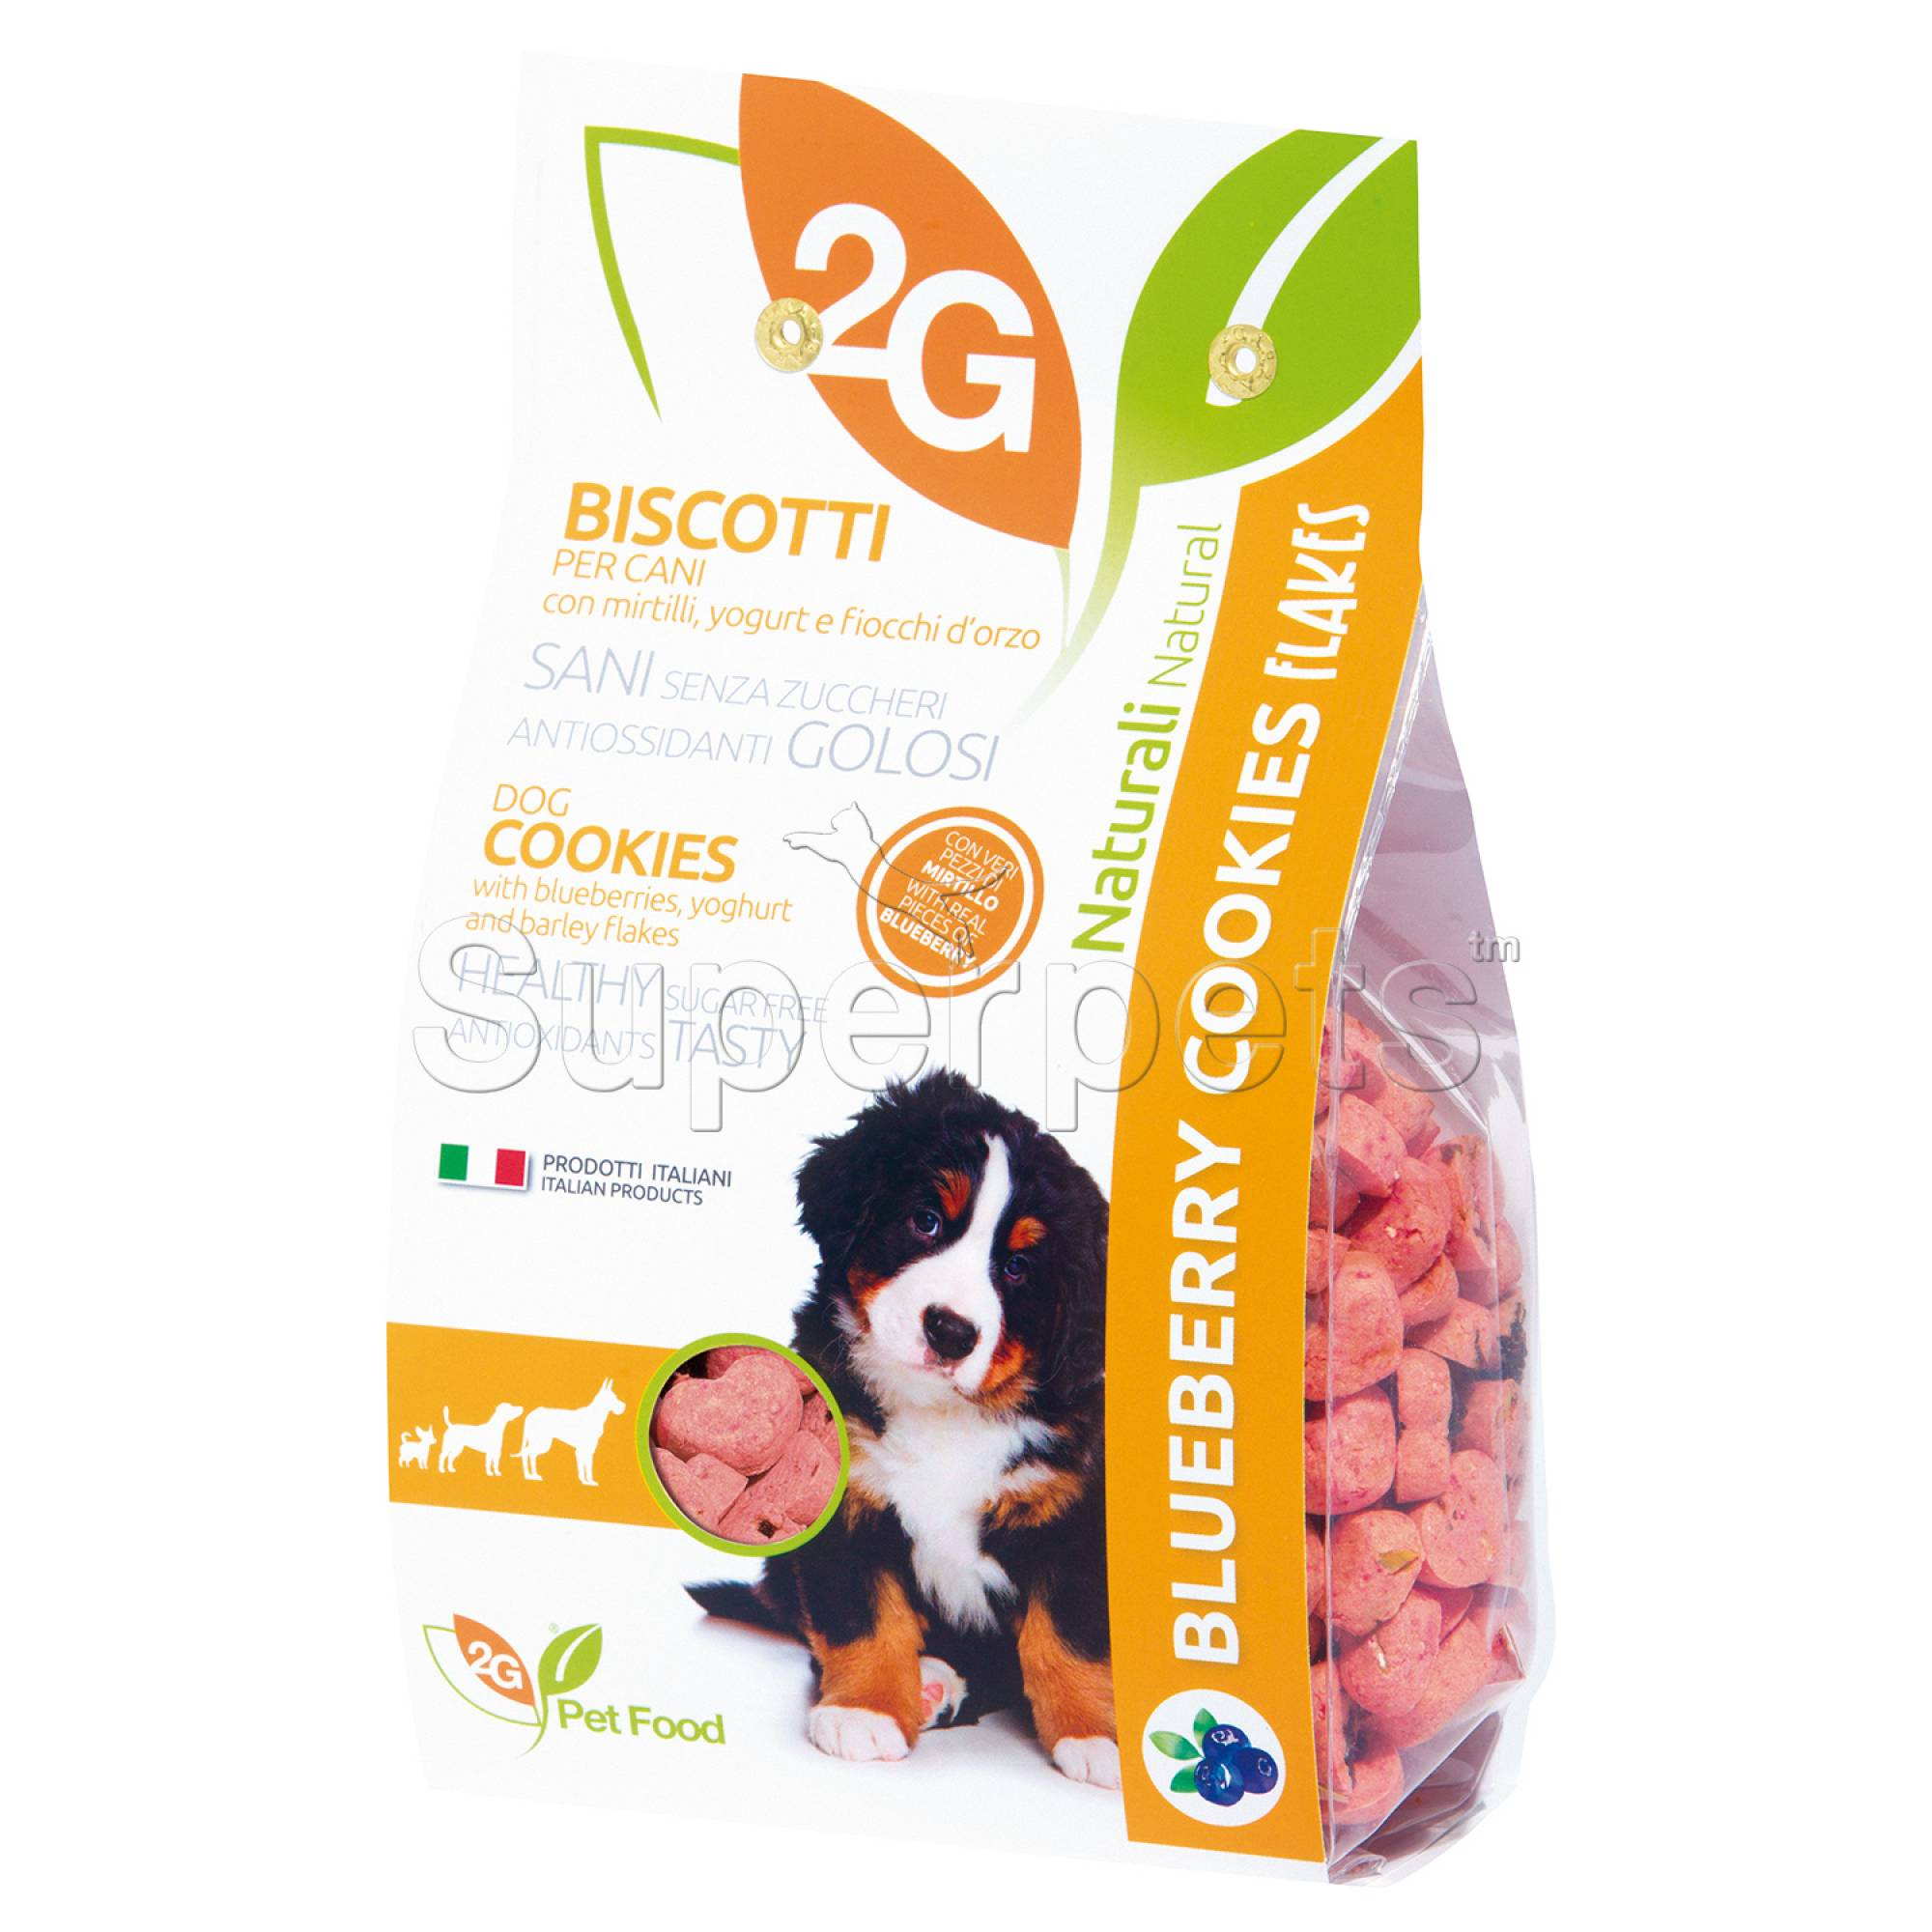 2G Pet Food - Blueberry Dog Cookies 350g